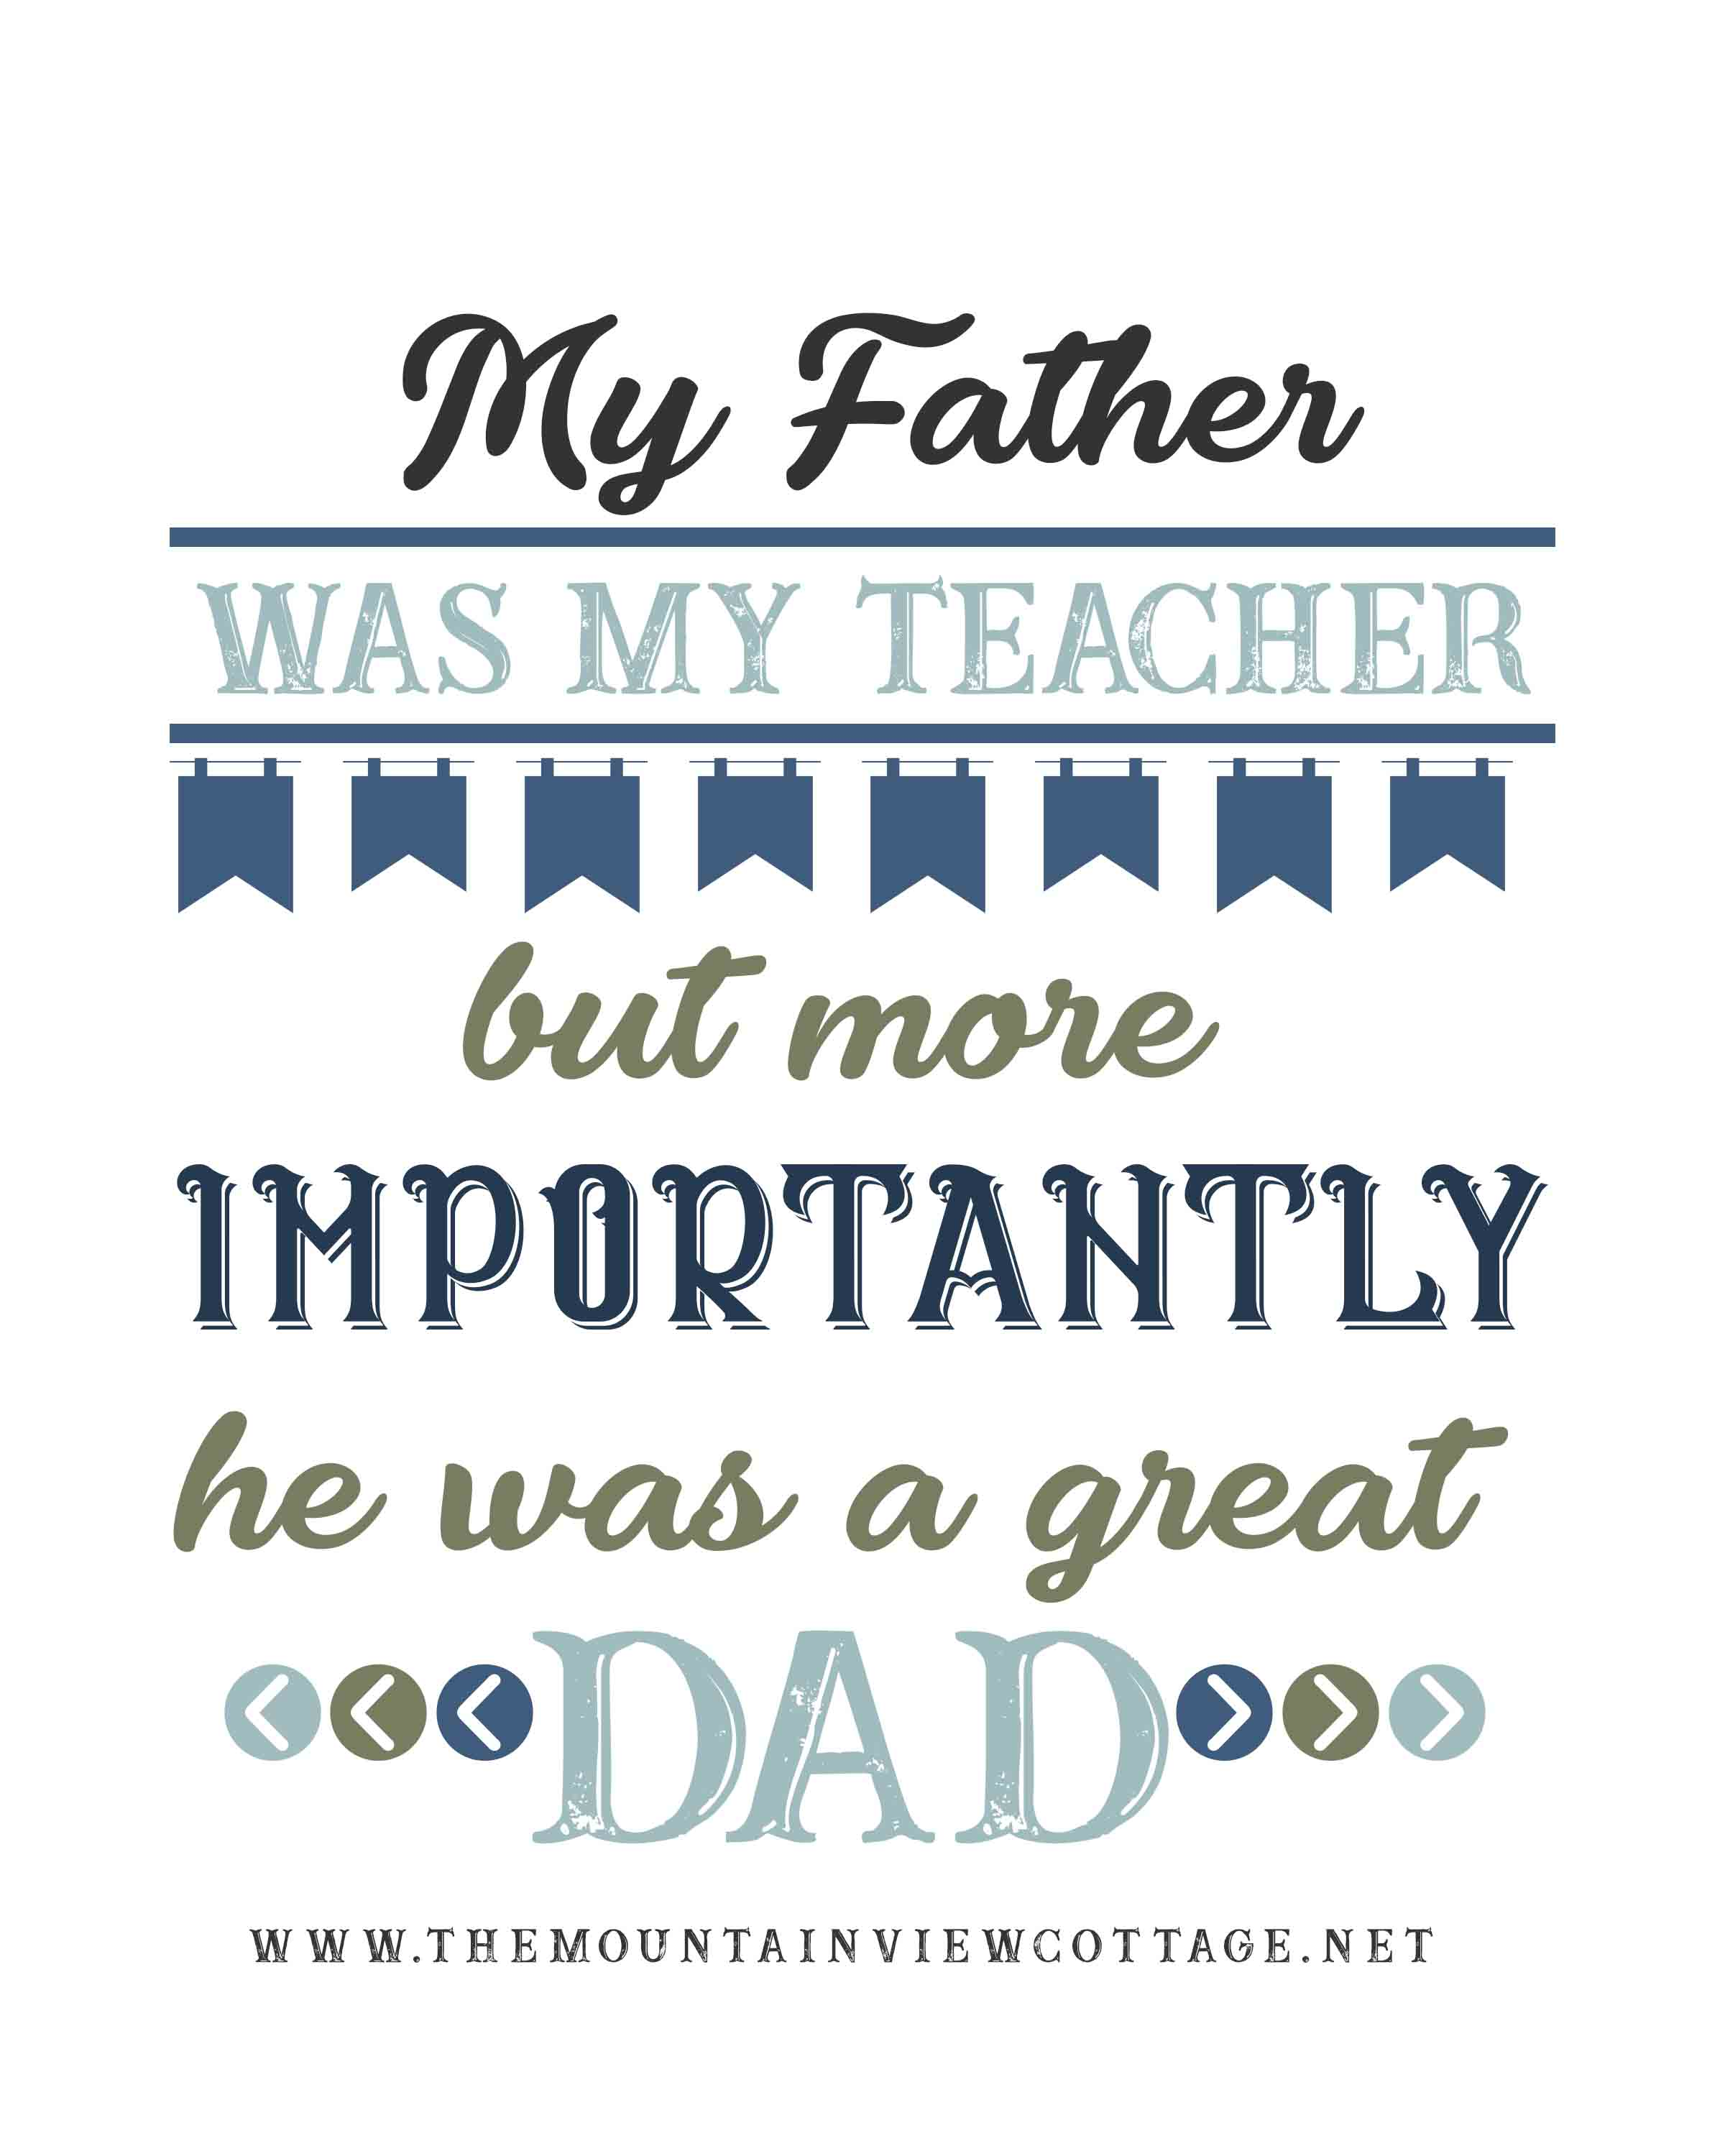 Dad quotes-Father quotes-I love you dad quotes-My father was my teacher but more importantly he was a great dad